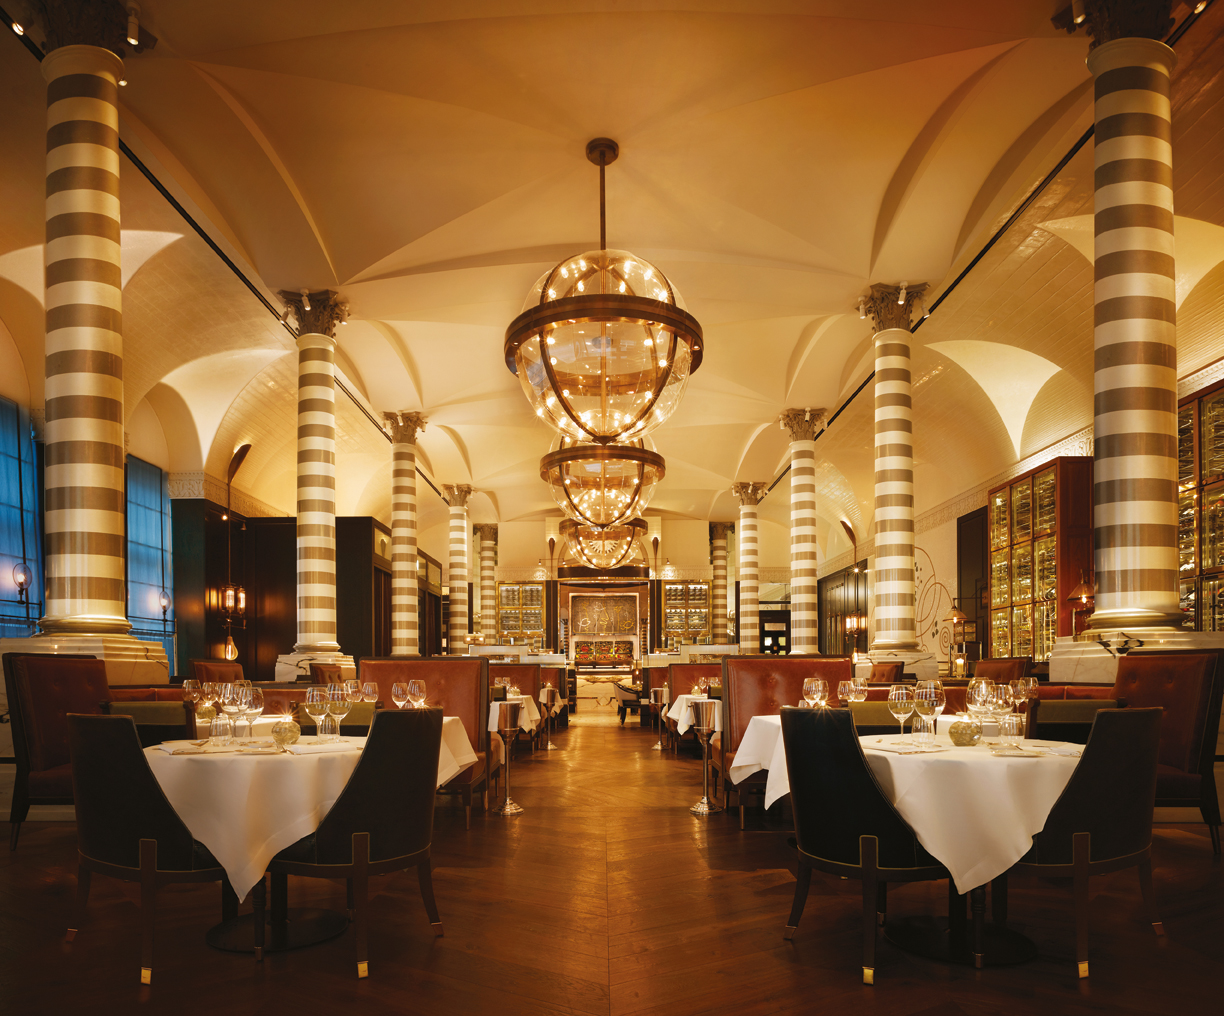 Reserve a table at Massimo Restaurant